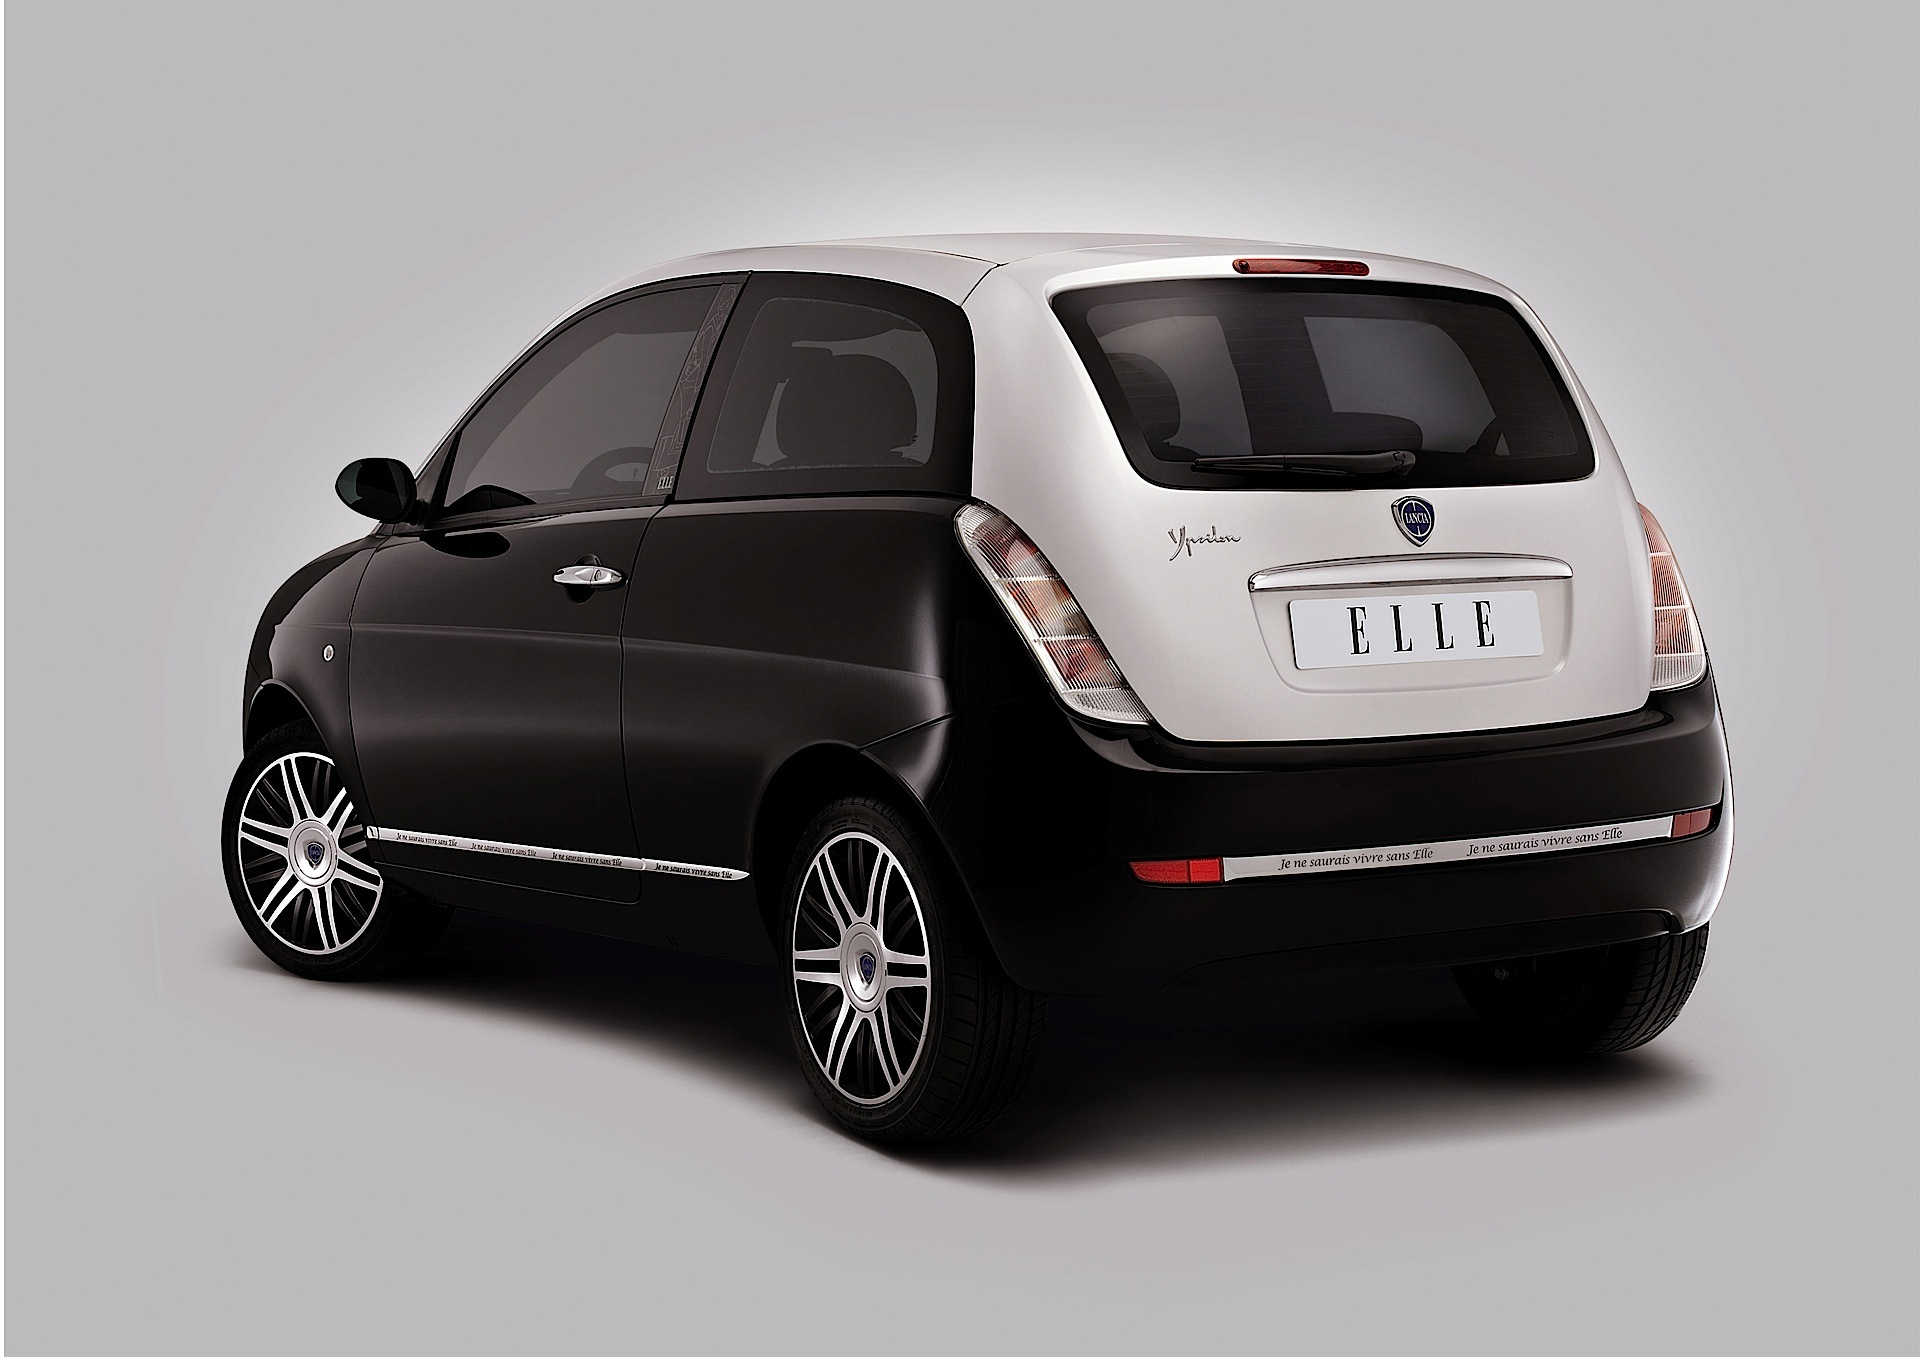 lancia ypsilon unyca 2010 2011 autoevolution. Black Bedroom Furniture Sets. Home Design Ideas